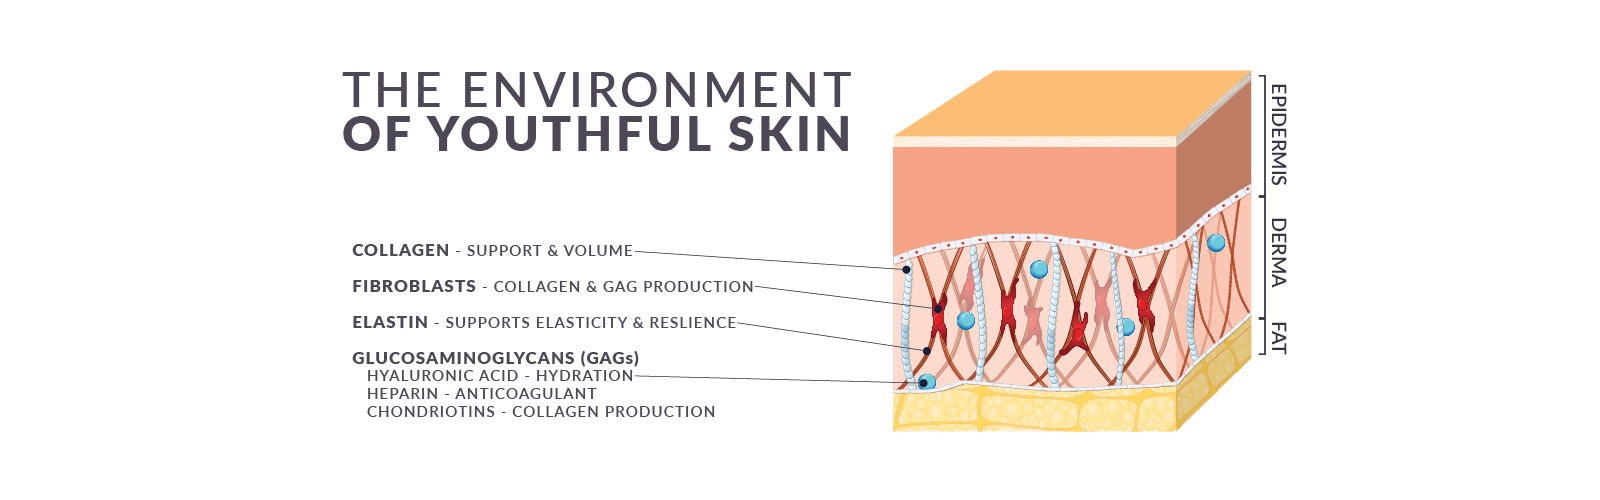 Environment of Youthful Skin Transparent.png